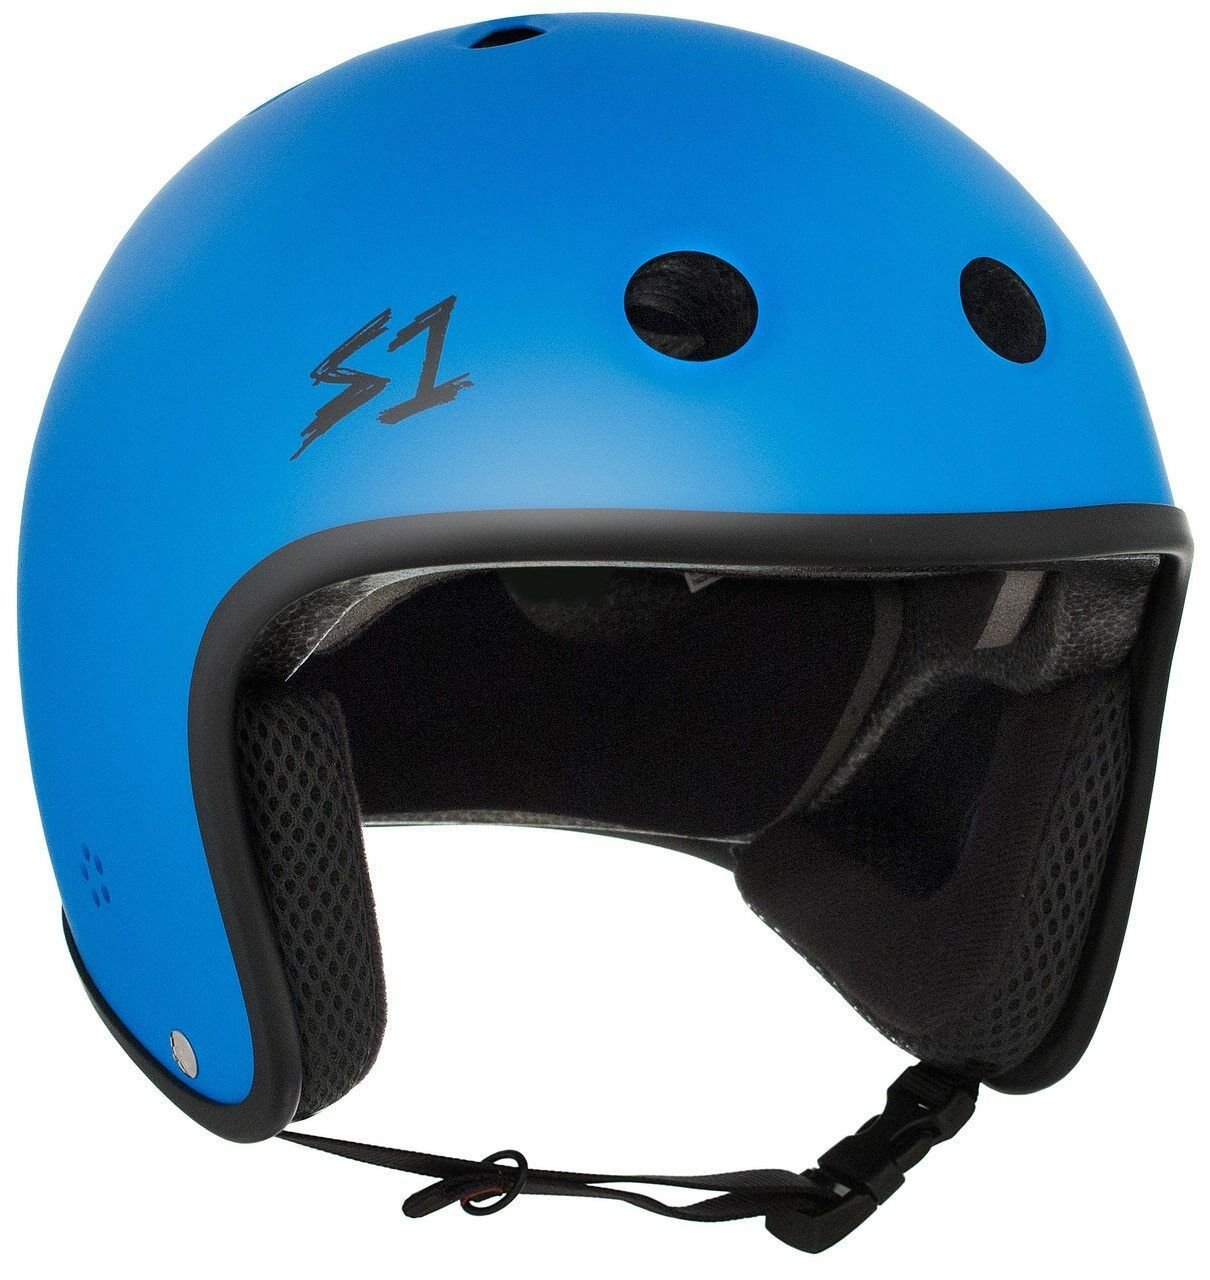 S1  Retro Lifer Helmet - Cyan Matte  fast shipping worldwide